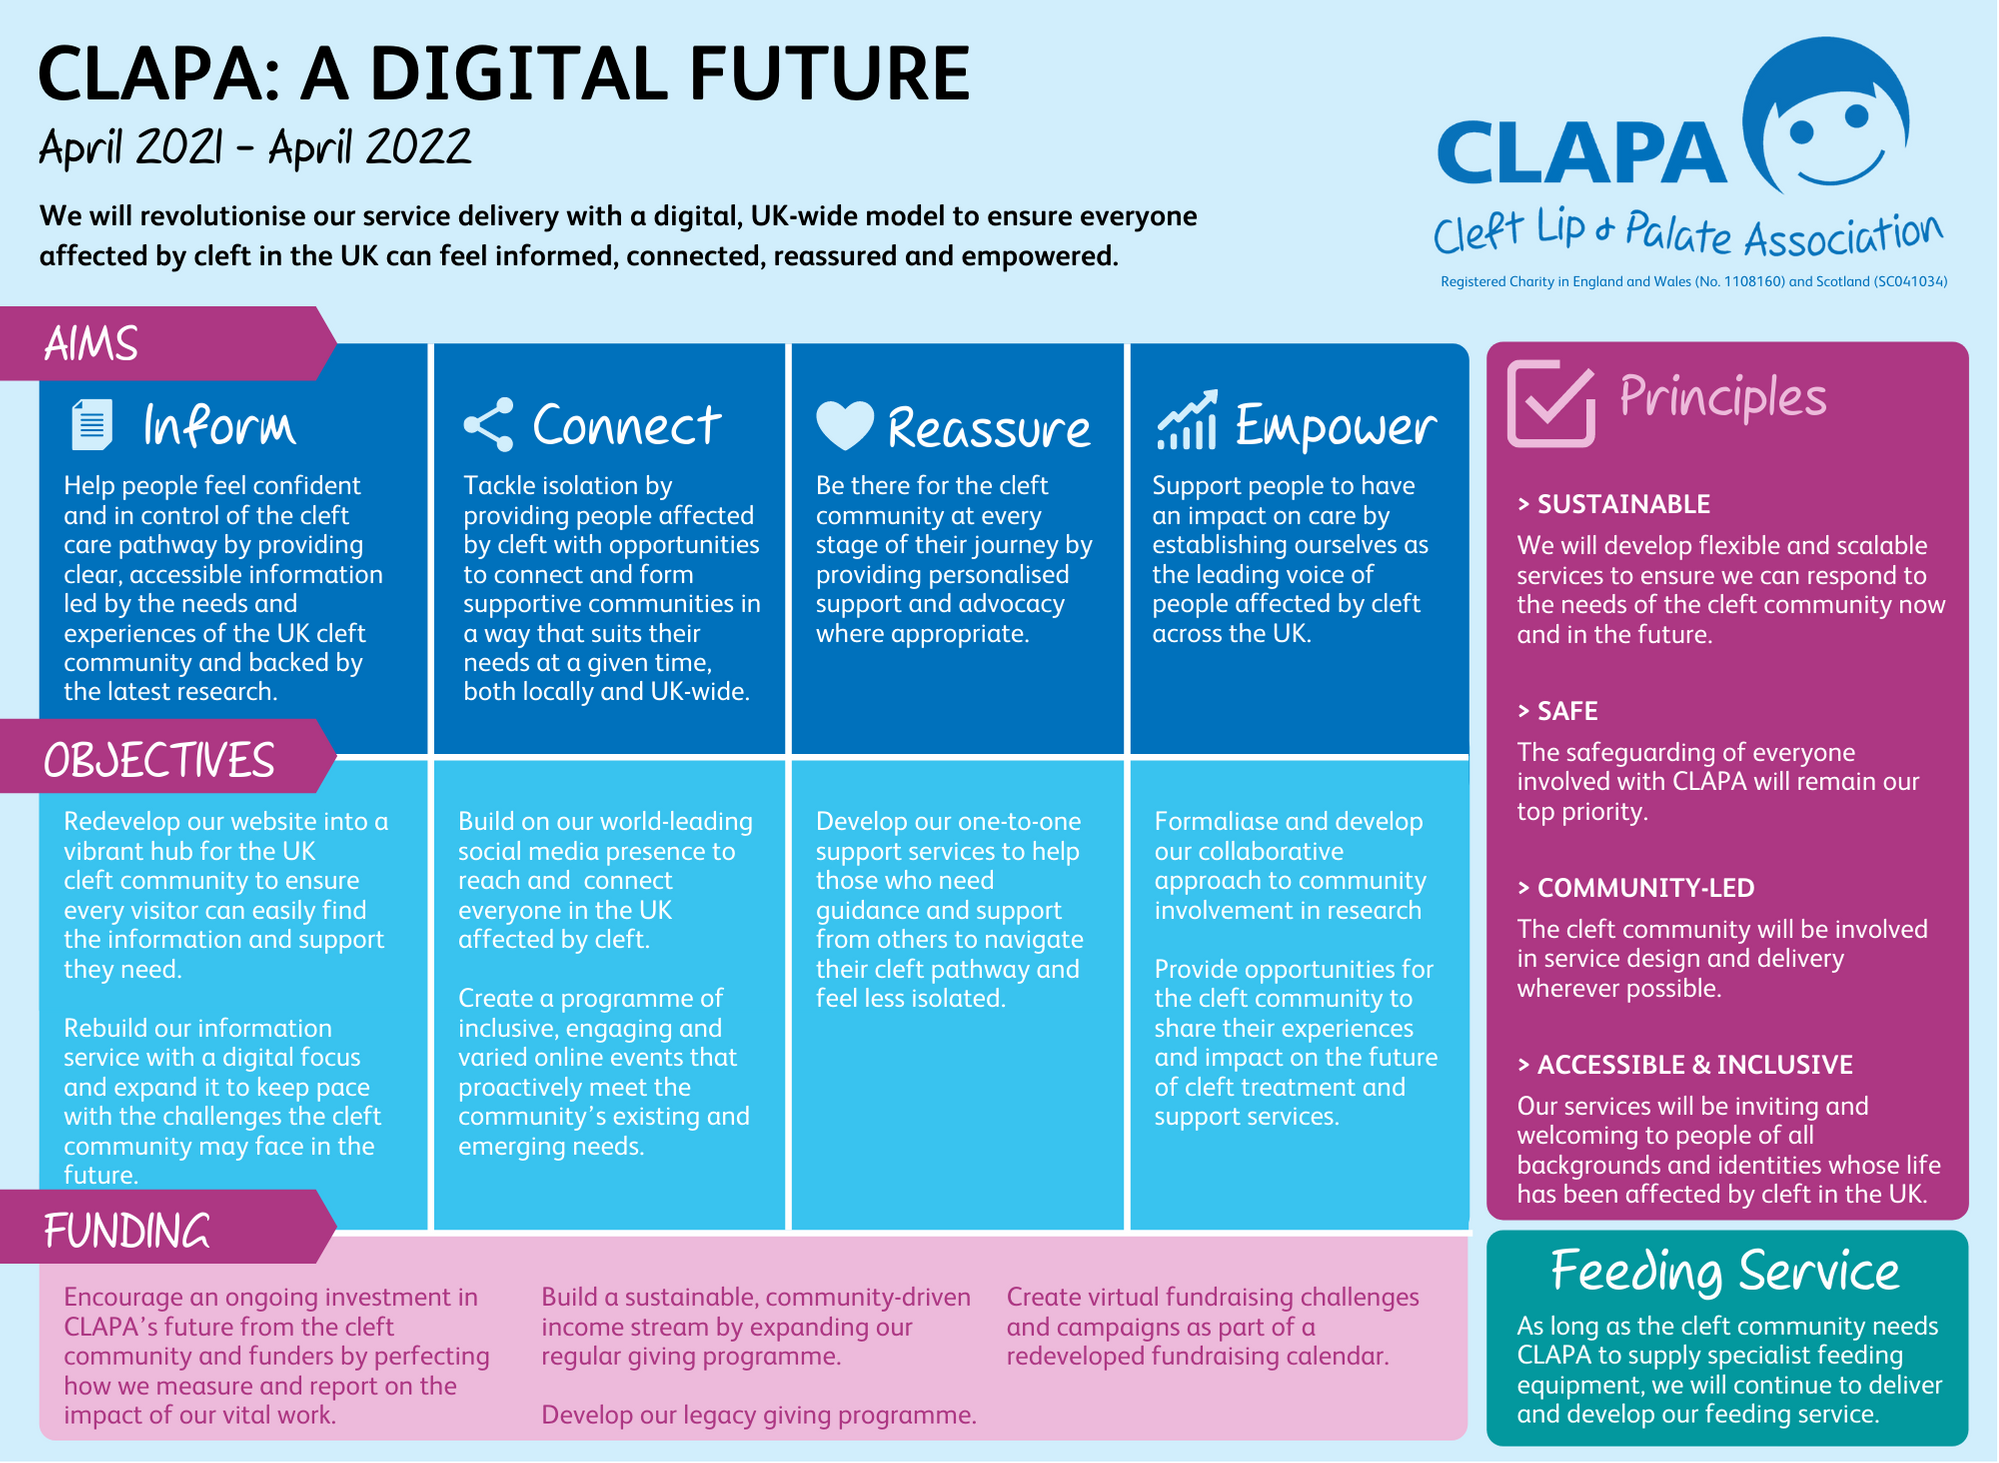 Image of CLAPA's 2021-22 strategy, described in text below